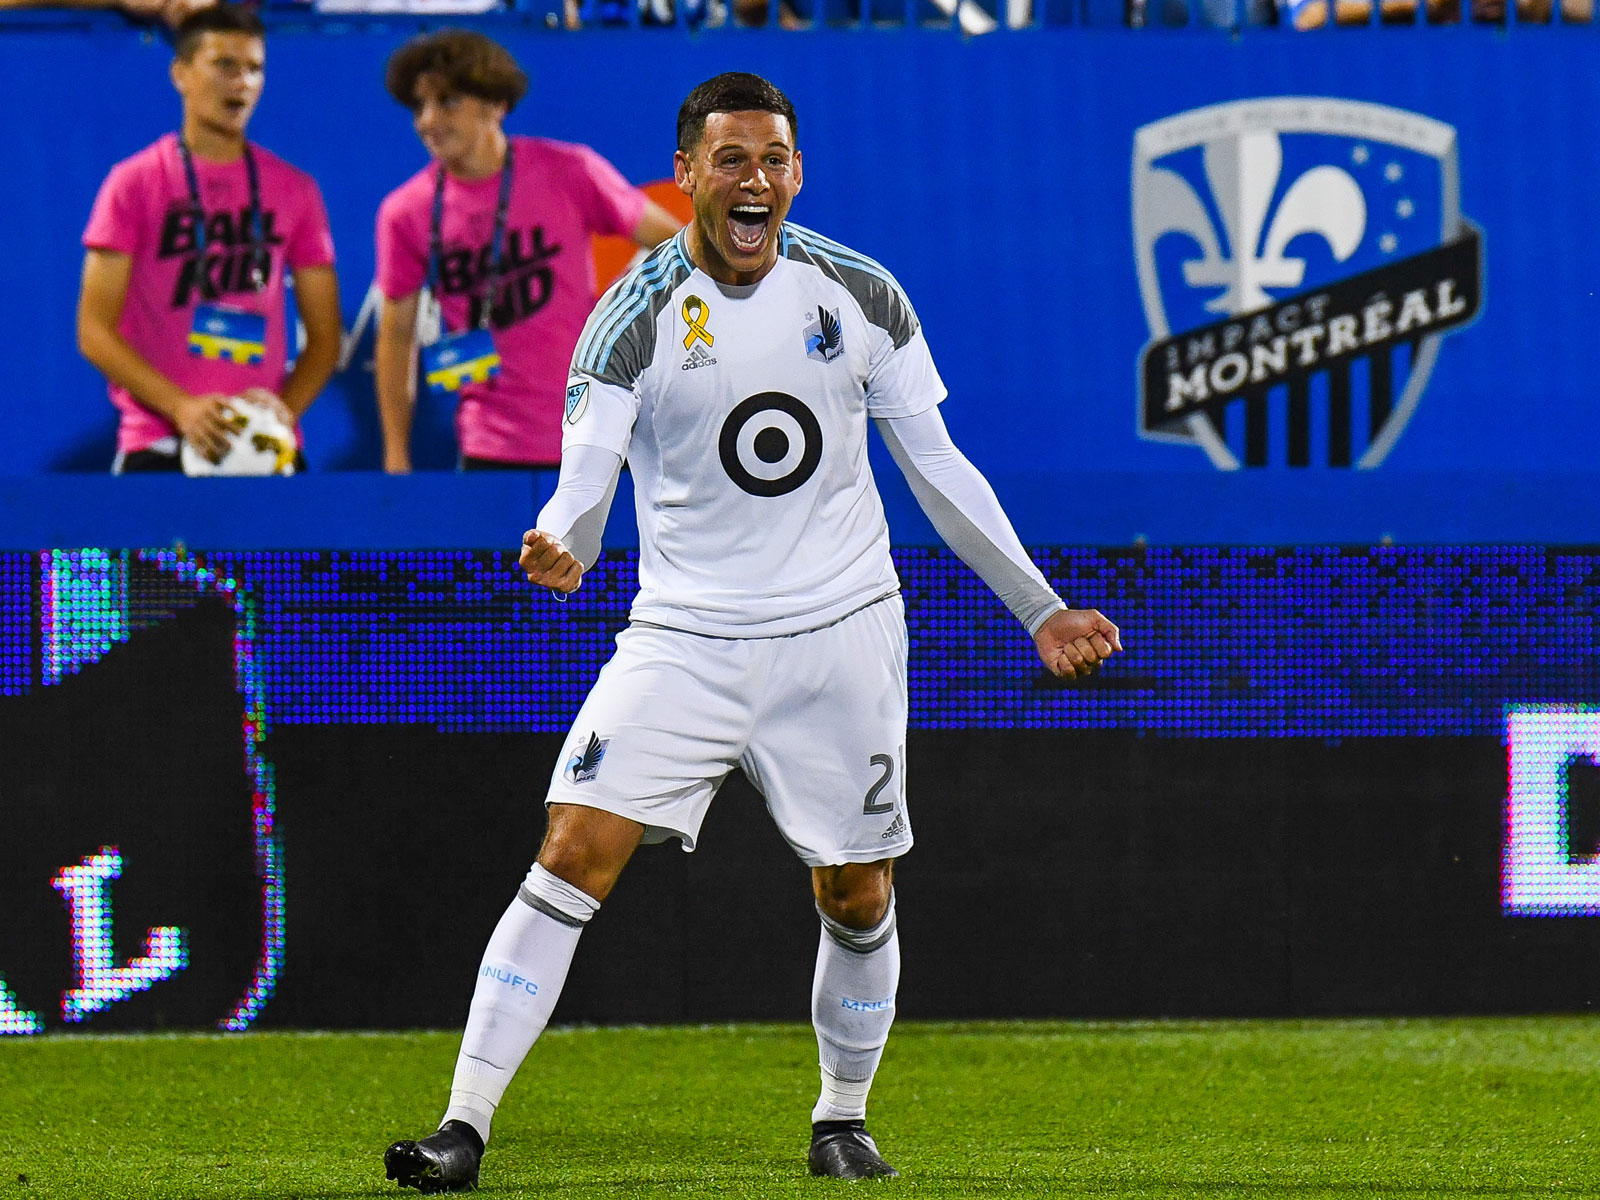 Minnesota United's Christian Ramirez finally has his chance with the U.S. men's national team